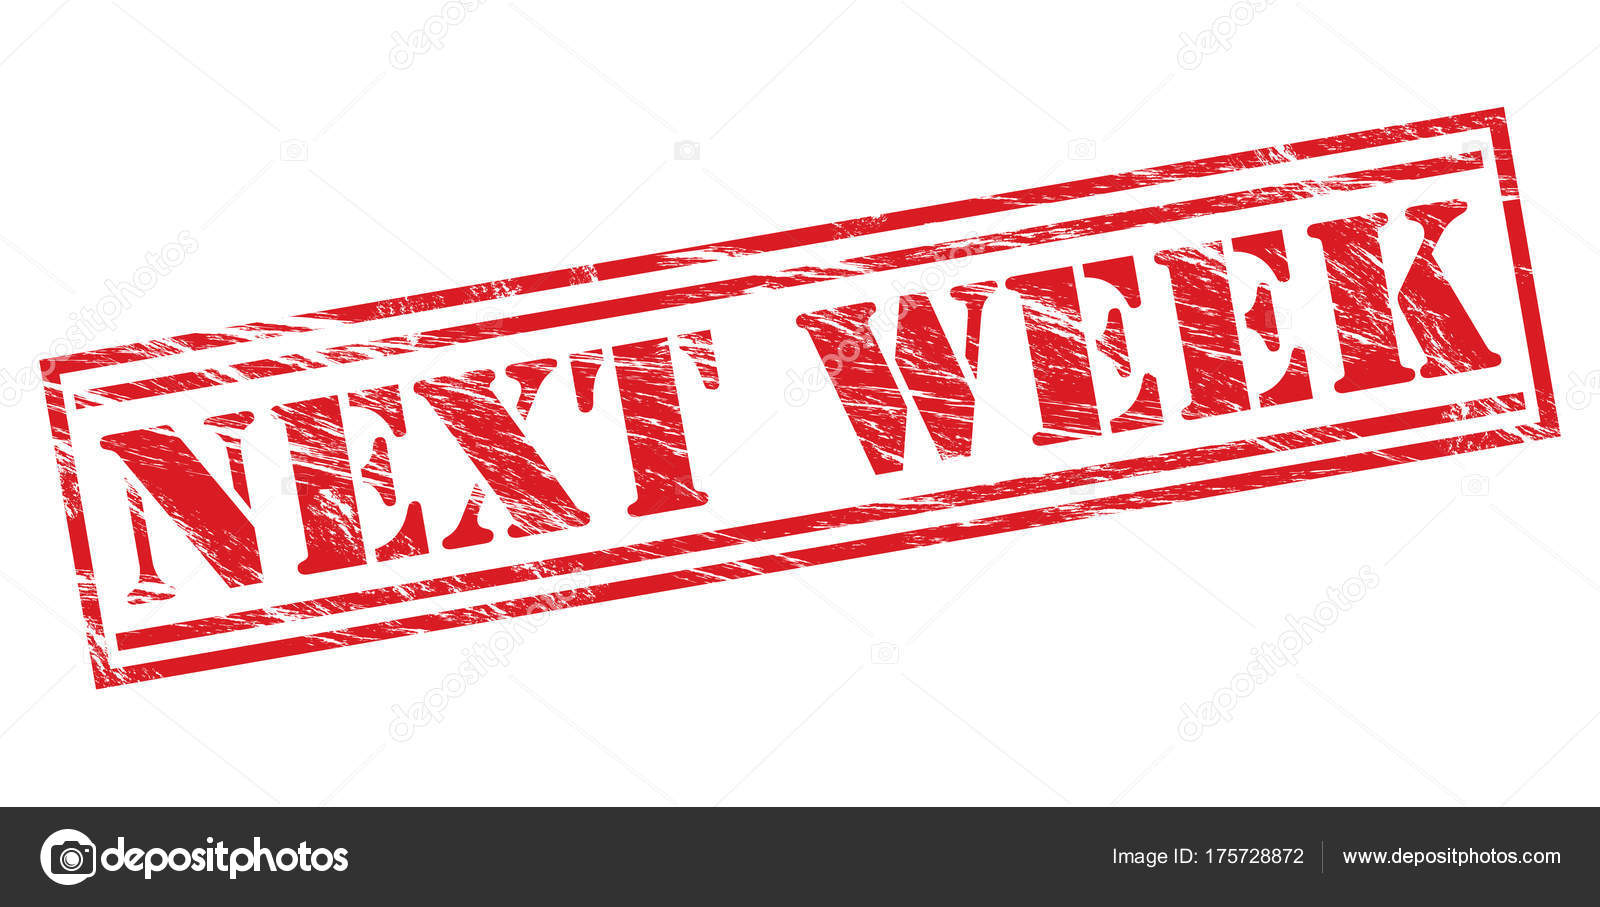 Next Week Red Stamp White Background — Stock Photo © CoNe88 #175728872